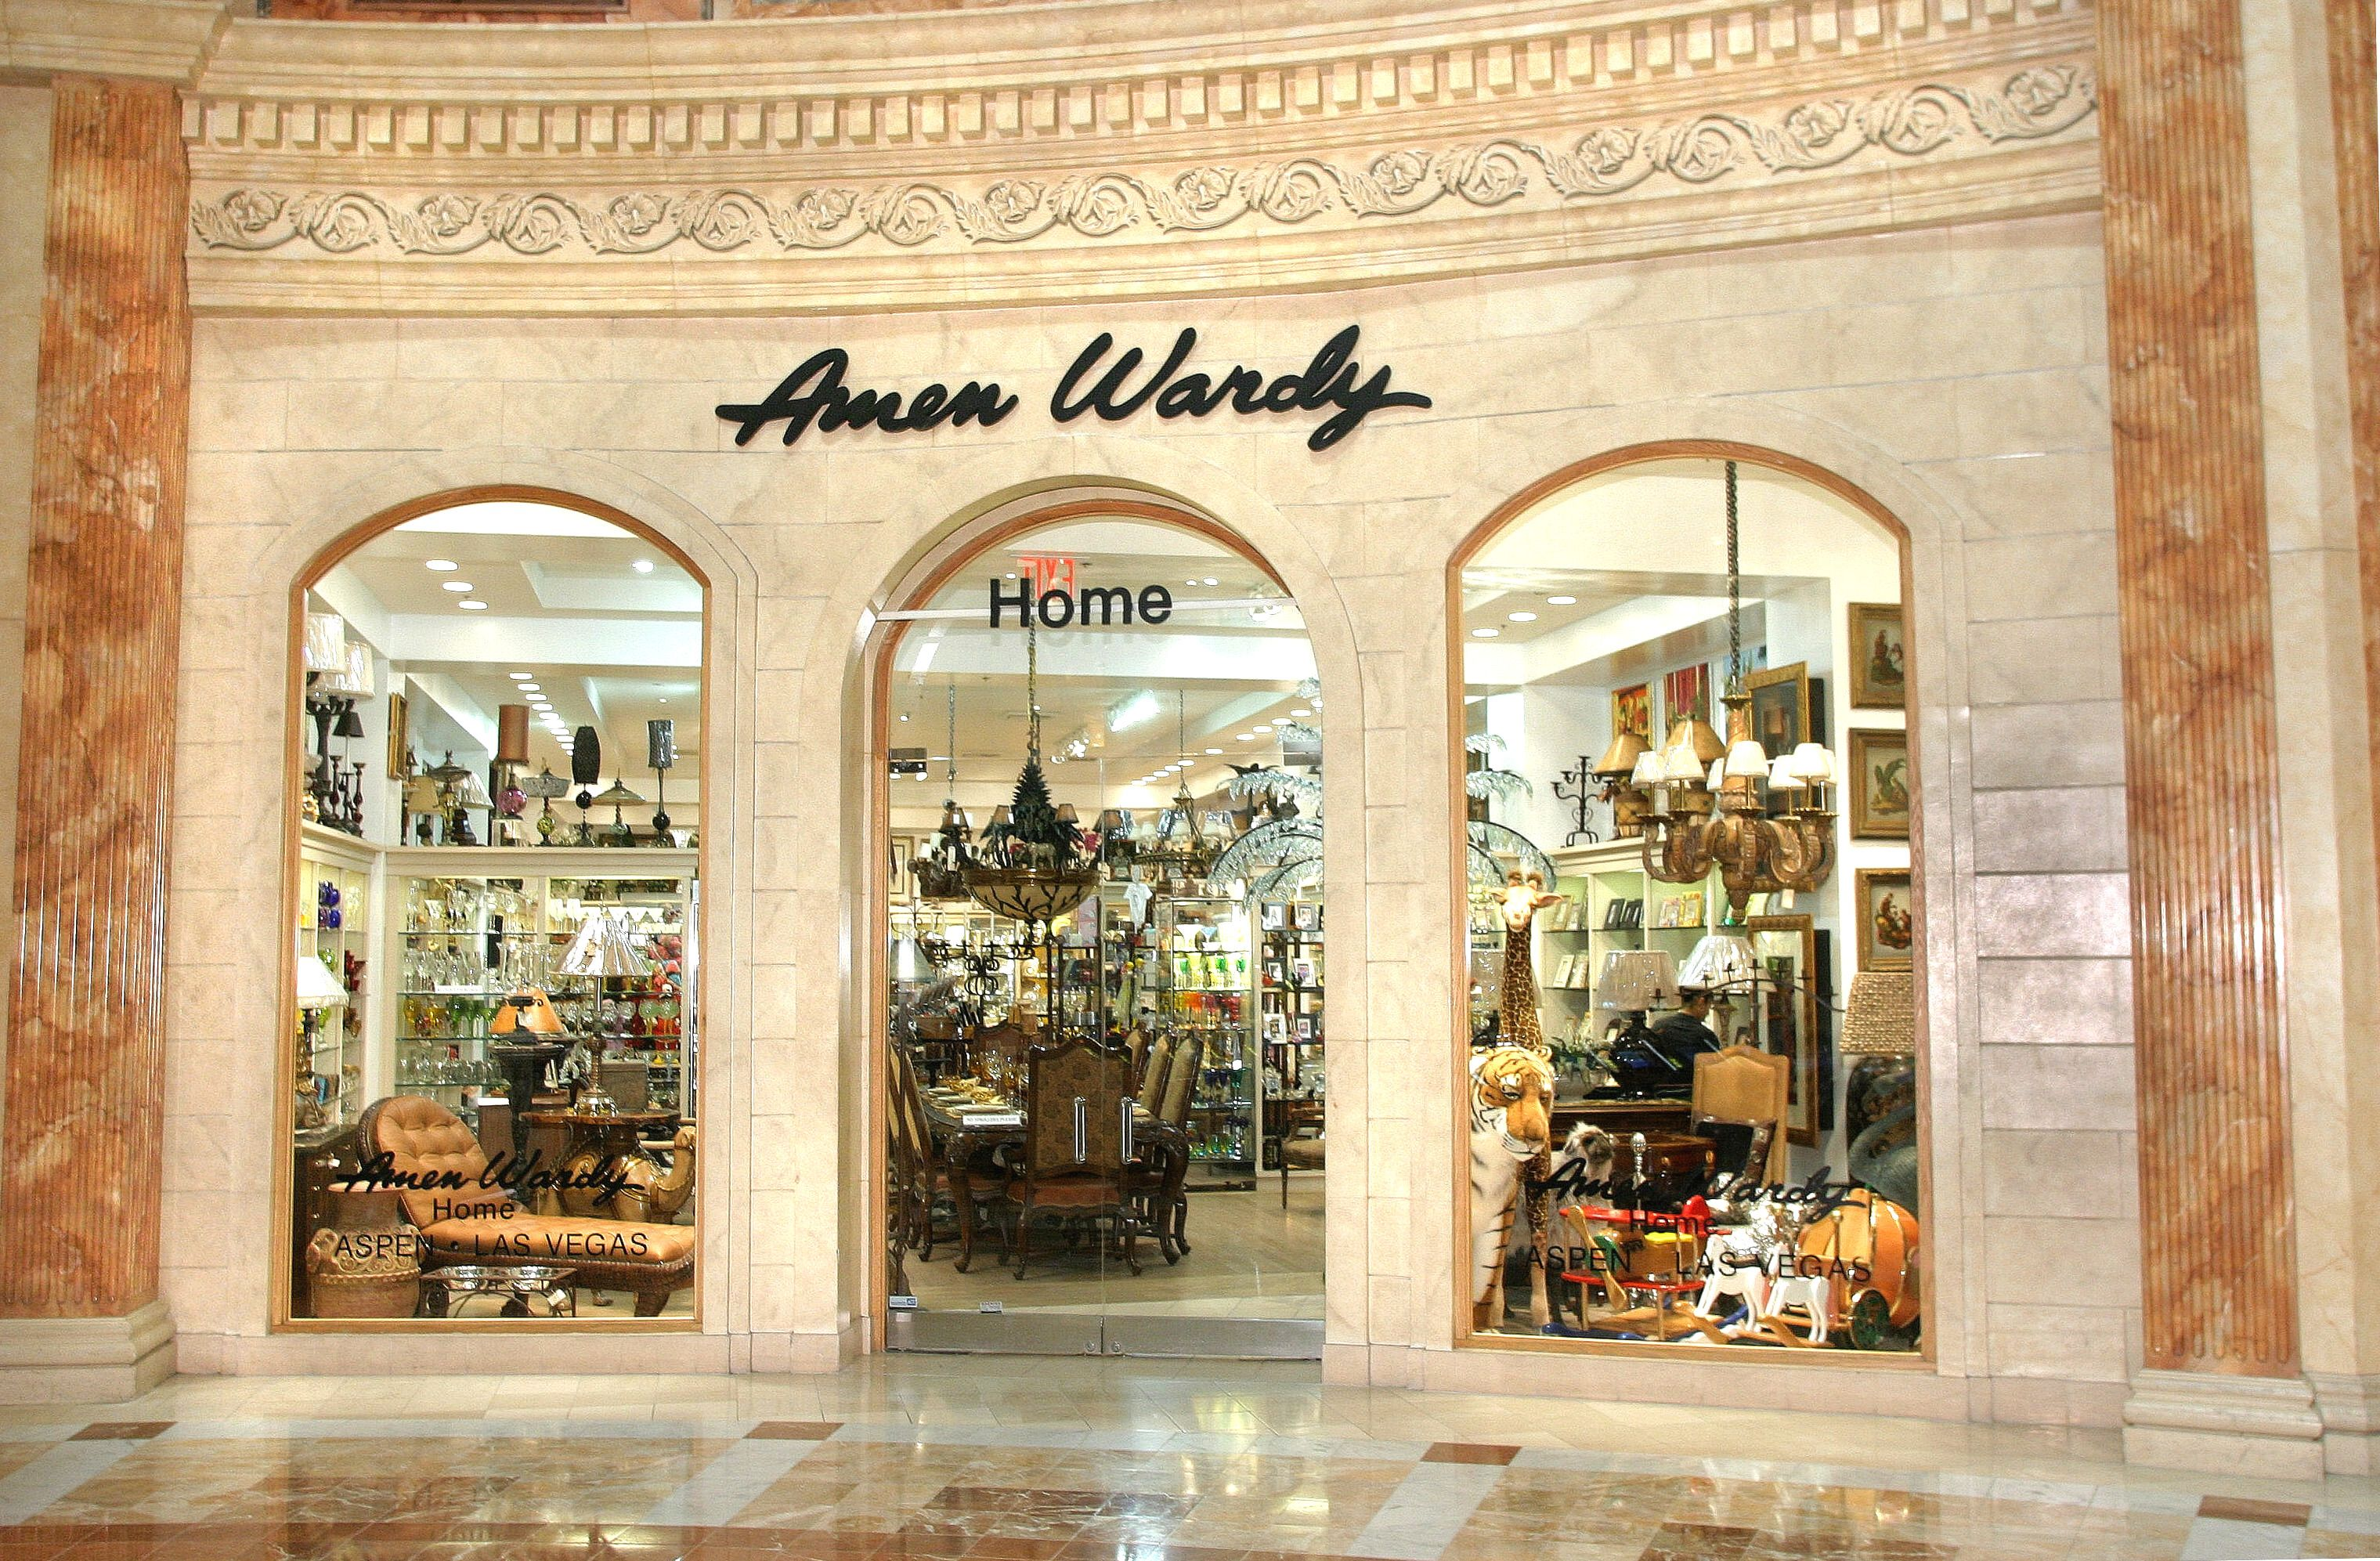 Amen Wardy amen wardy circa 2004 #theforumshops #amenwardy | 20 years at the